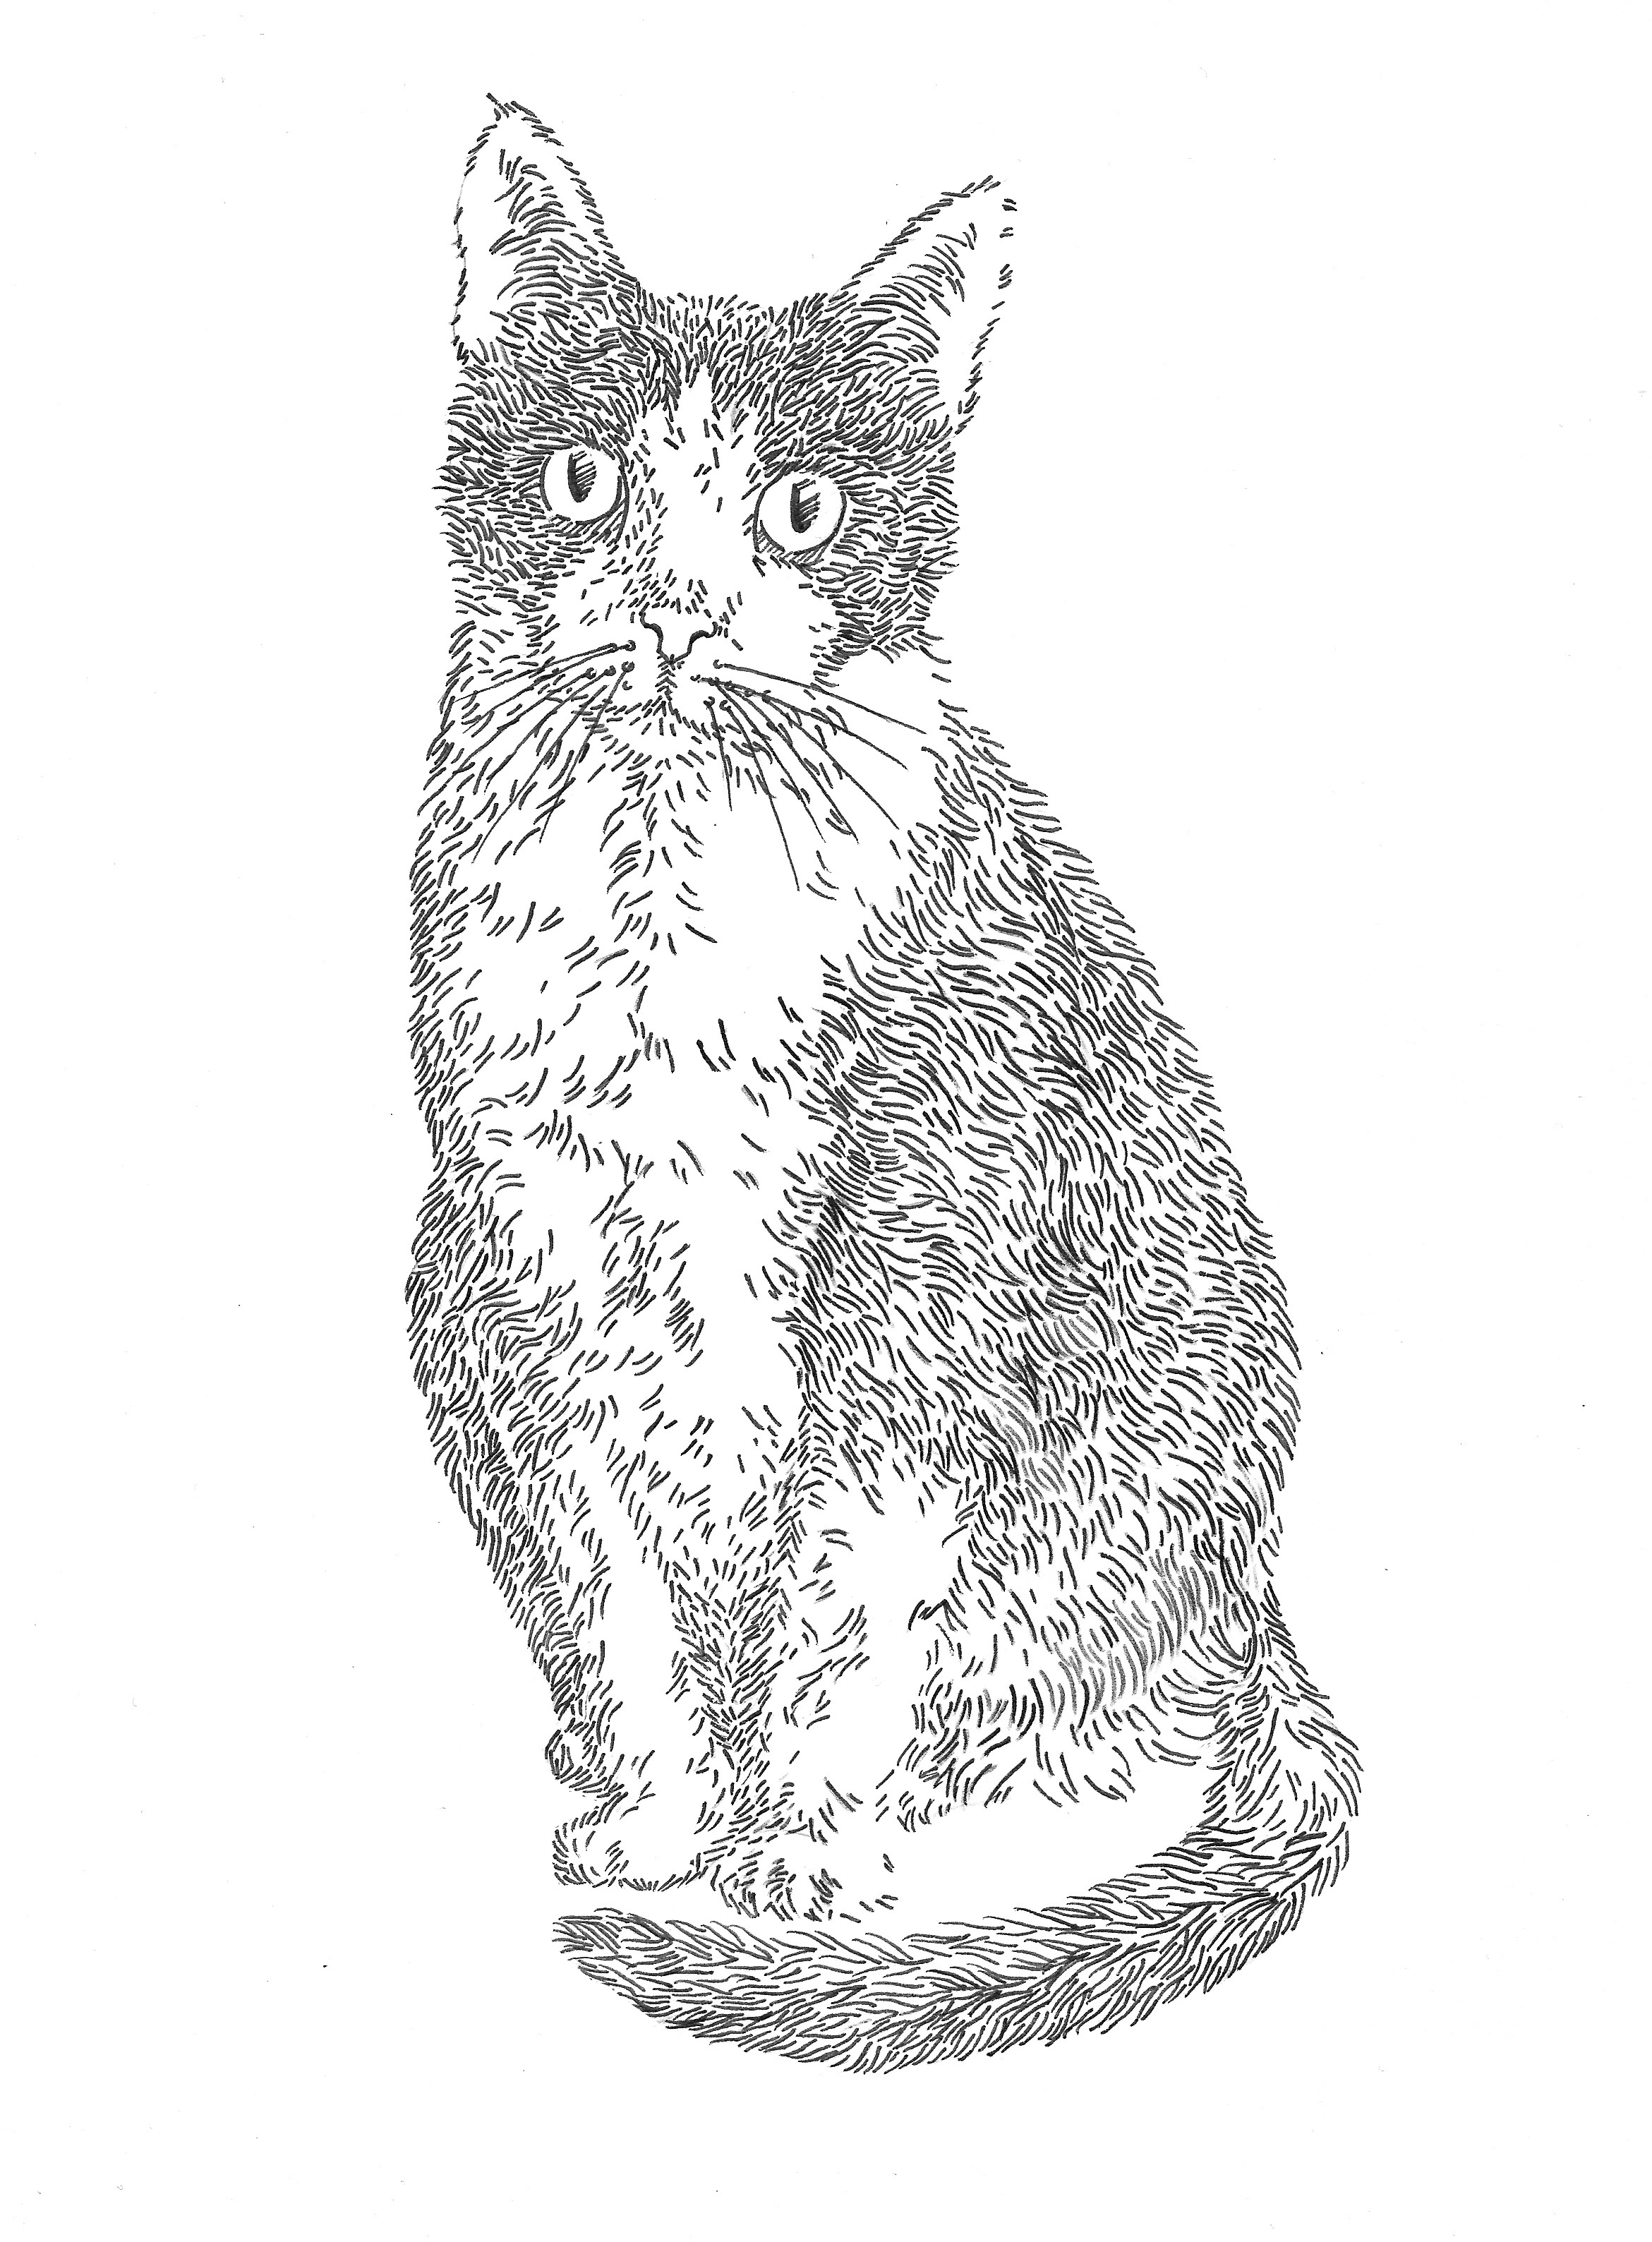 Rue   Pen on Paper   Summer 2016  This piece was donated to the Cat Town Foster Art Show and went home with Rue at the time of her adoption.